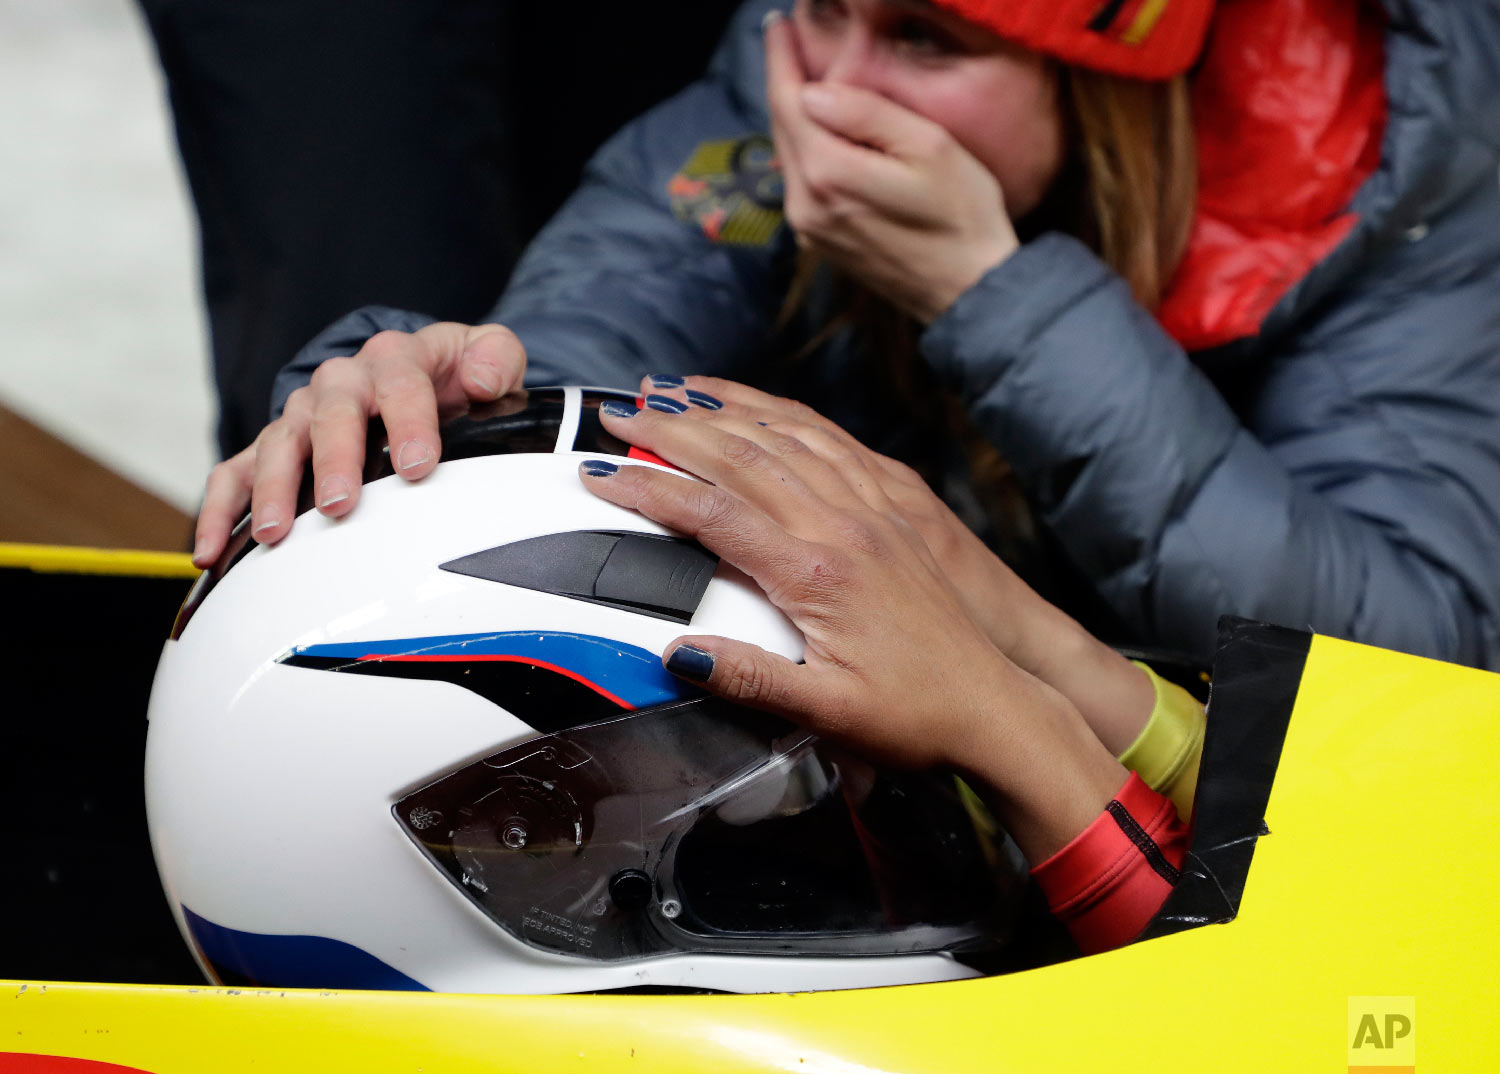 Driver Mariama Jamanka of Germany celebrates with teammates after their gold medal winning run during the women's two-man bobsled final at the 2018 Winter Olympics in Pyeongchang, South Korea, Wednesday, Feb. 21, 2018. (AP Photo/Michael Sohn)